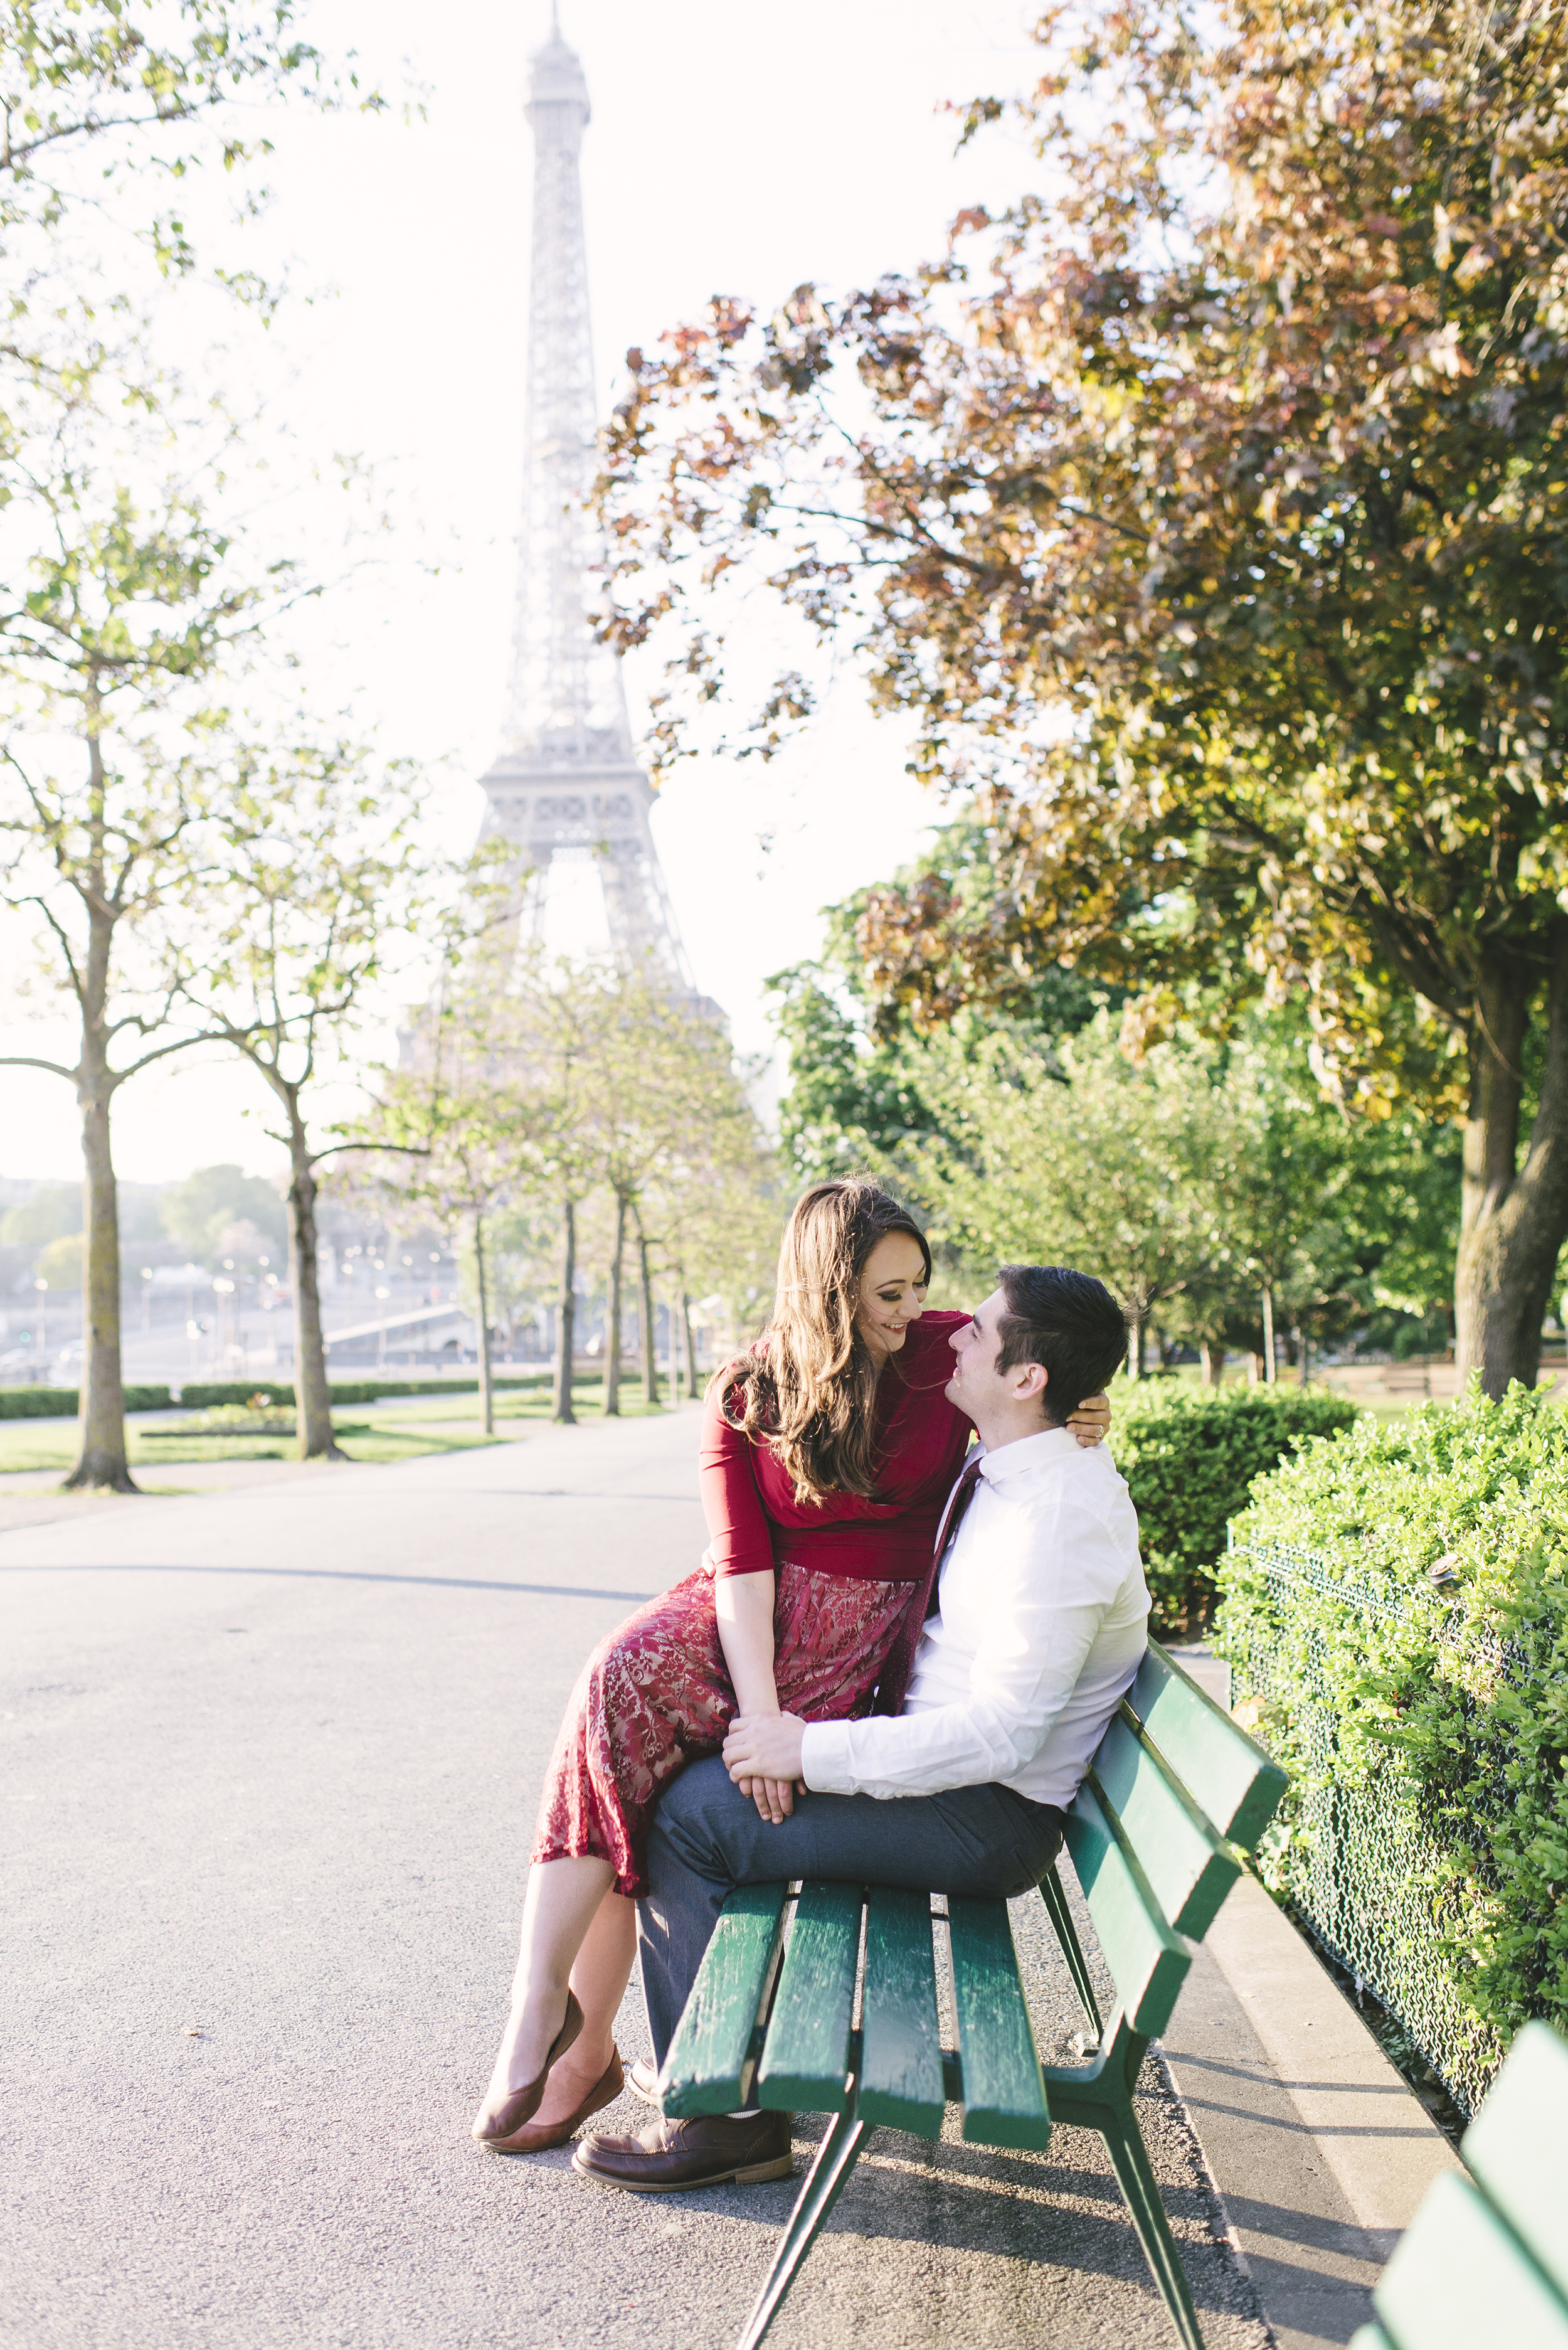 Couple-photoshoot-Anniversary-Paris-Eiffel-Tower-Trocadero065.jpg